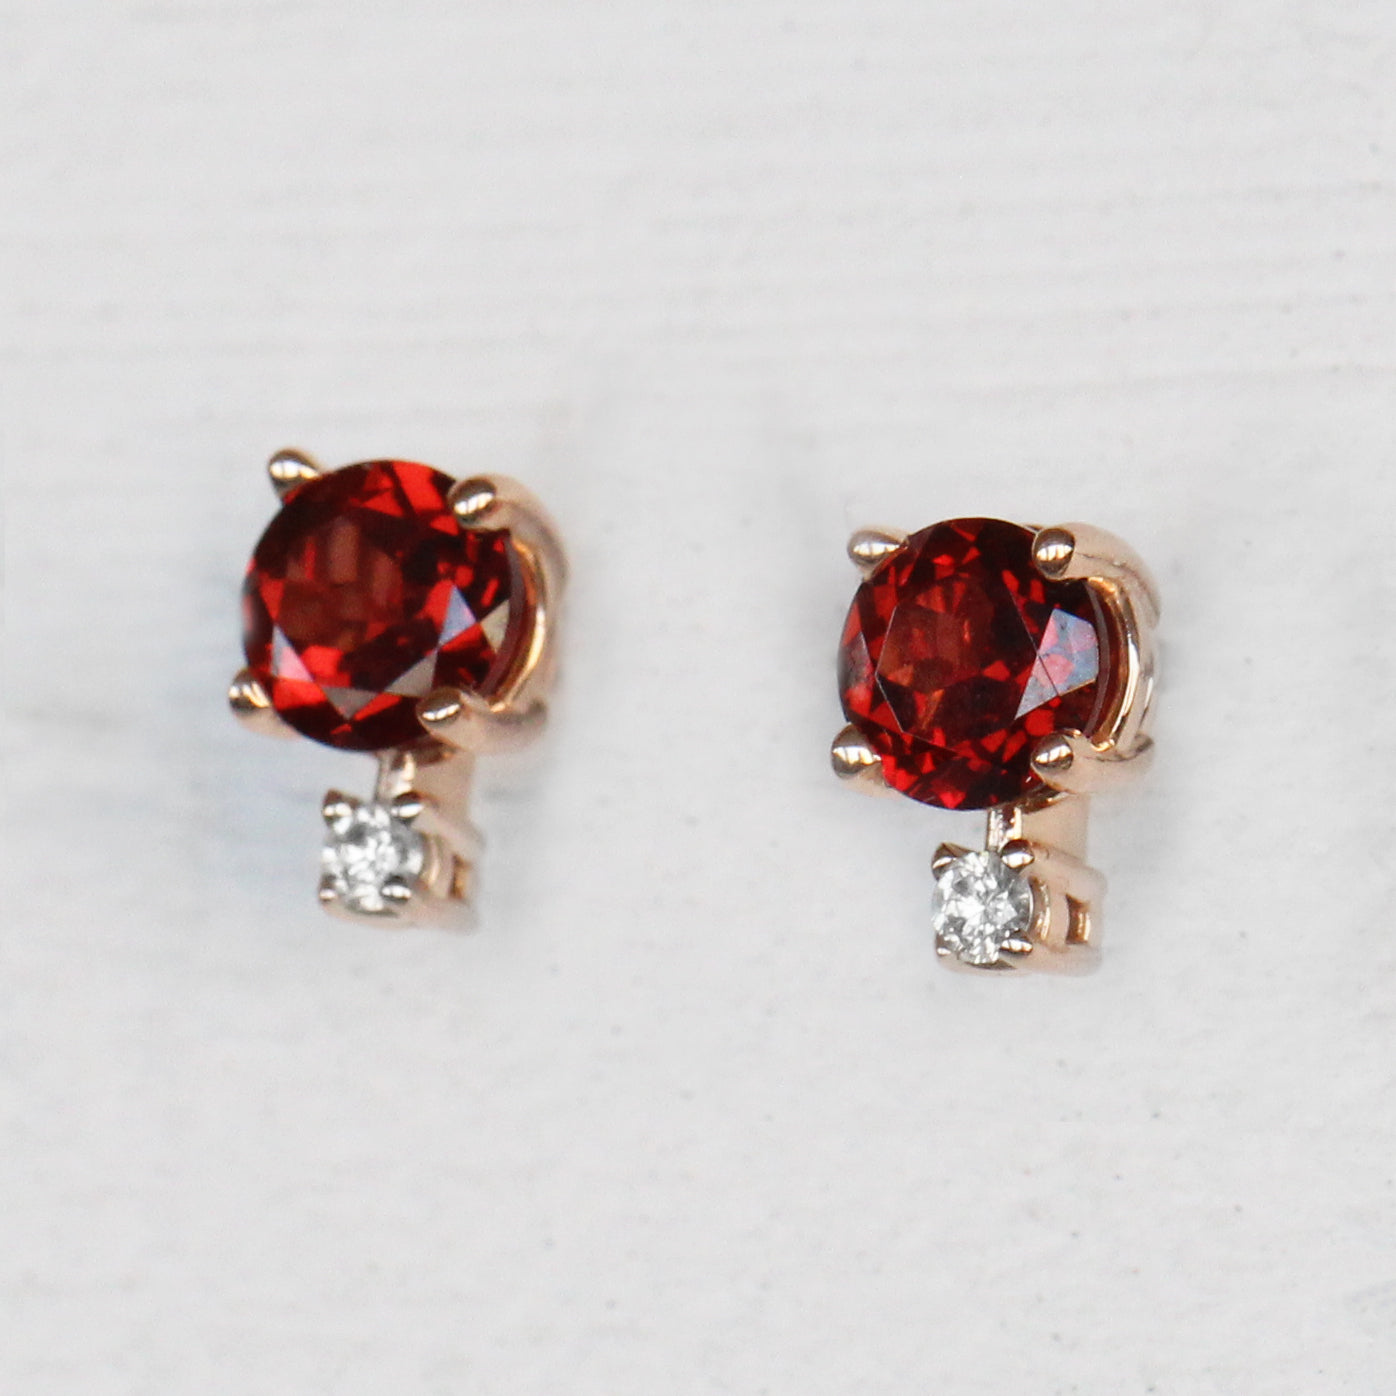 Joanna Earring with Garnet and Diamond Accent- Your Choice of 14k Gold - Celestial Diamonds ® by Midwinter Co.